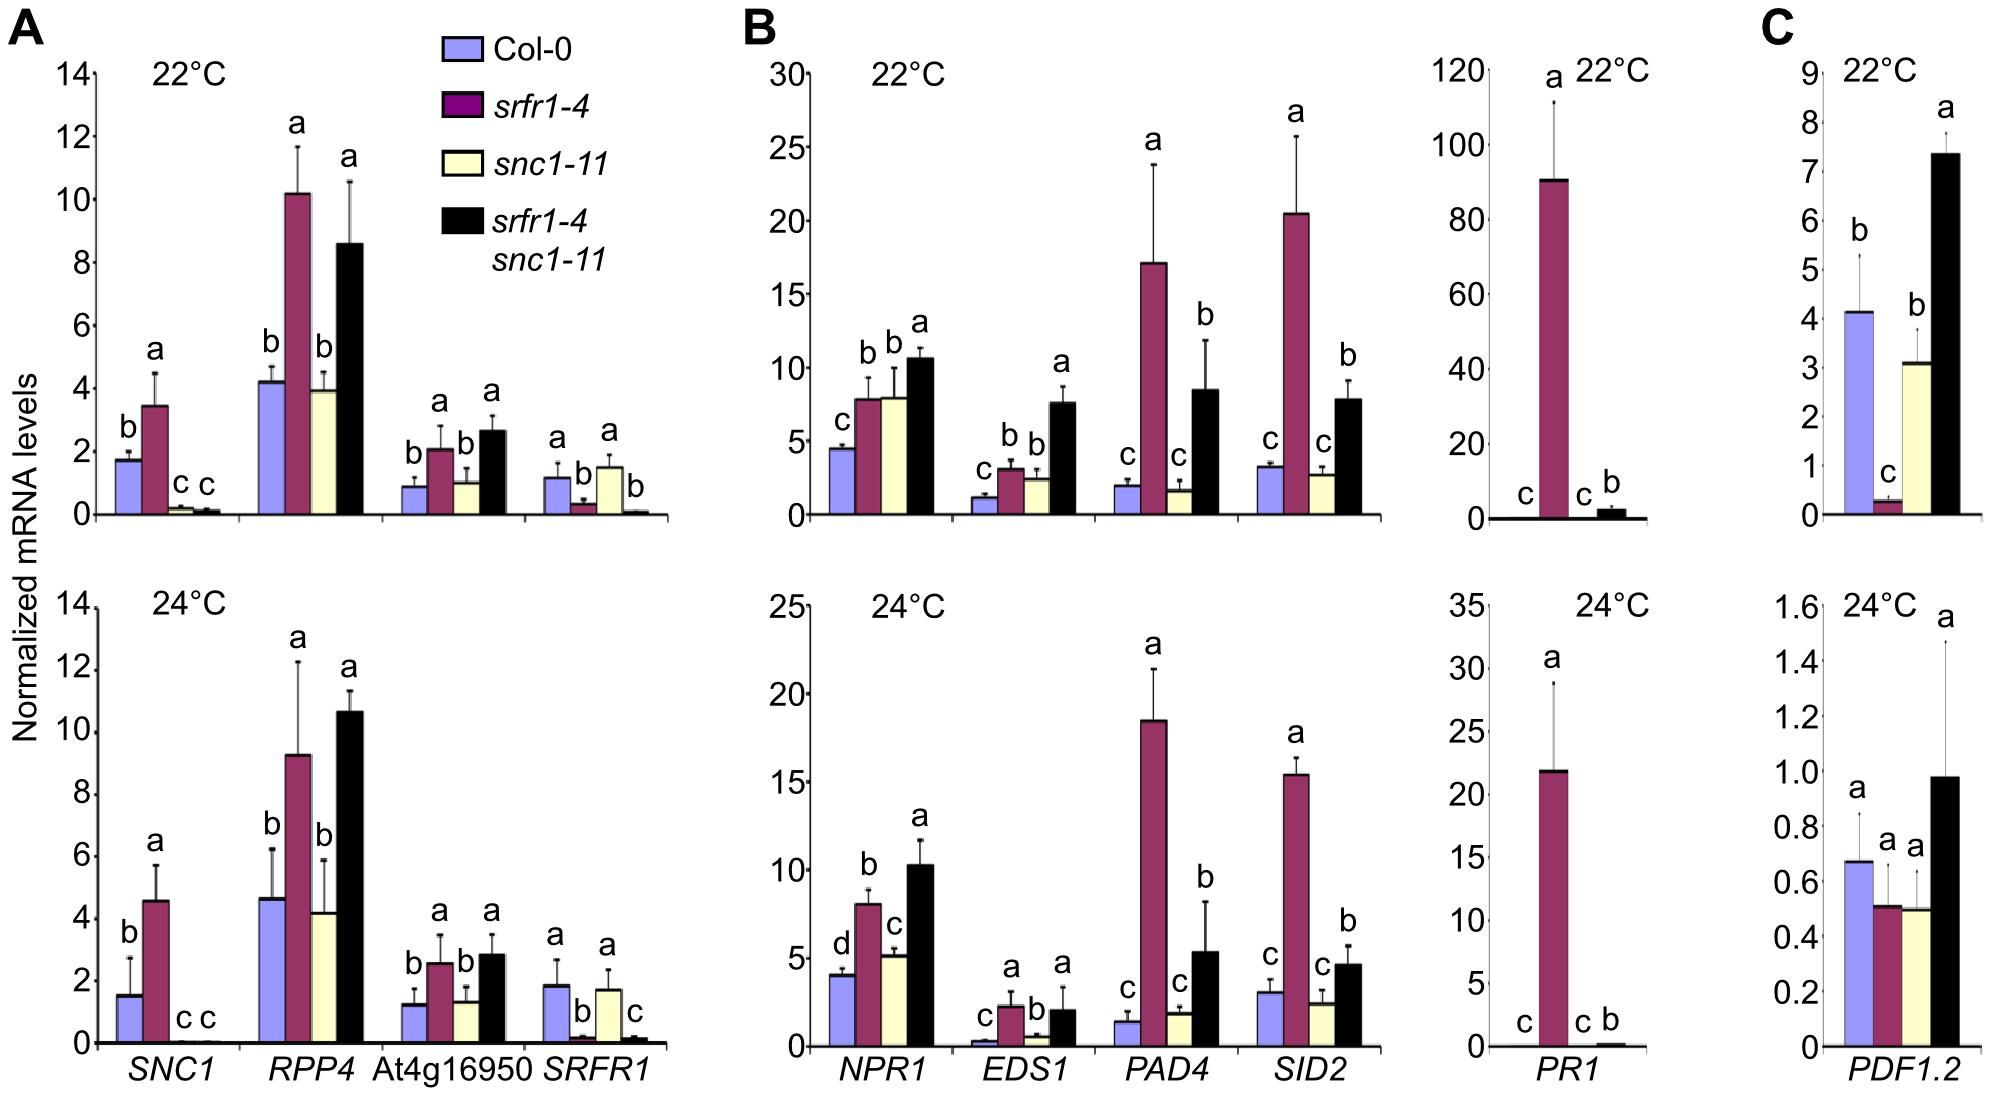 Transcript levels of defense-related genes are altered in <i>srfr1-4</i> and <i>srfr1-4 snc1-11</i>.